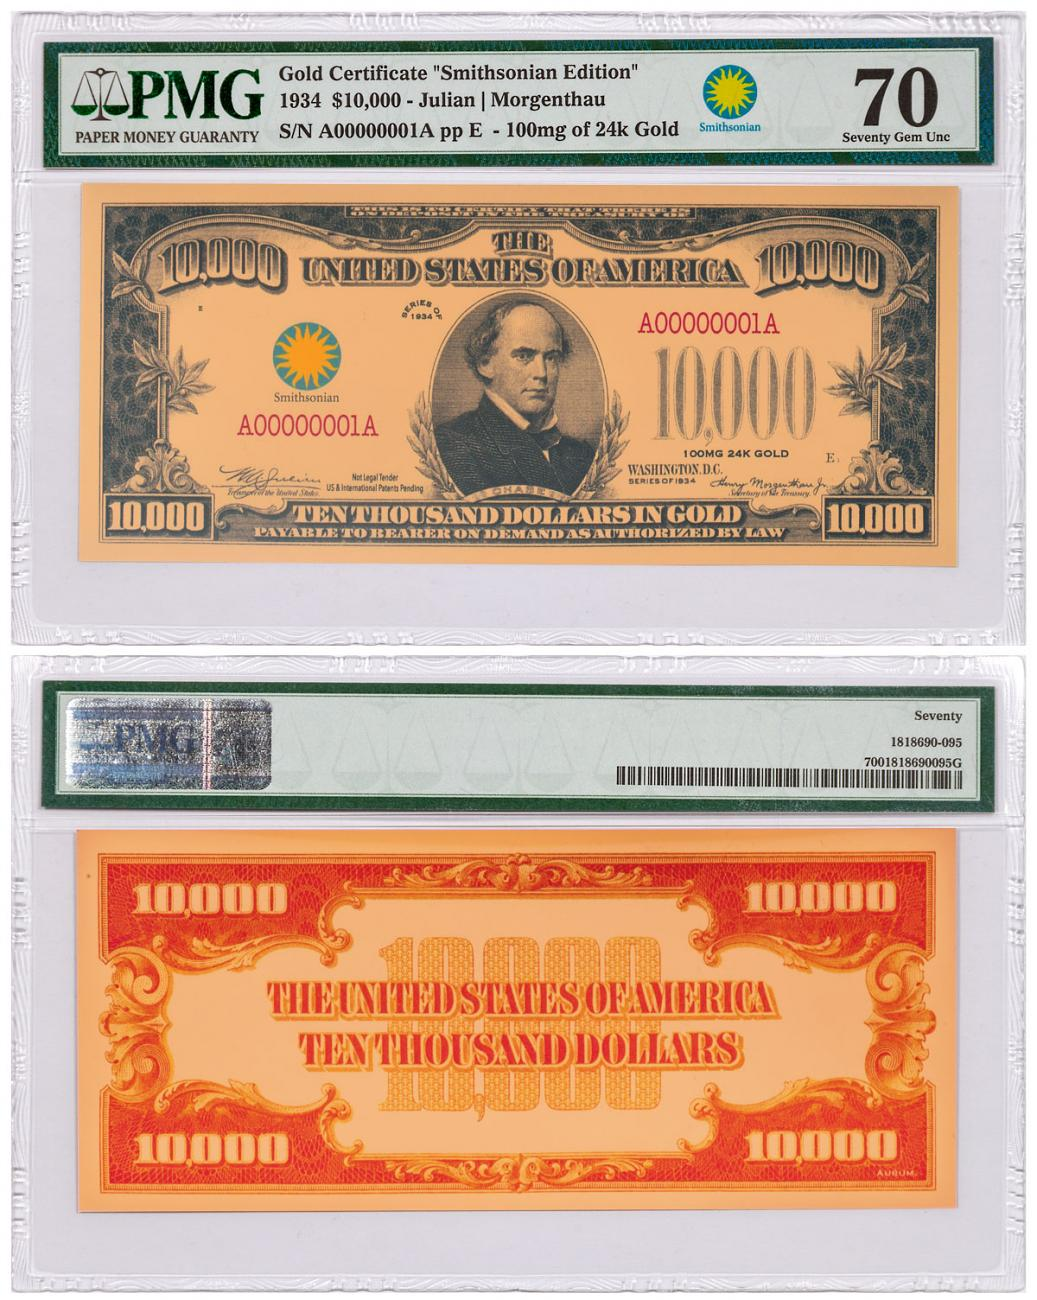 $10,000 Gold Certificate - Smithsonian Edition 1934 (Smithsonian Specimen) PMG 70